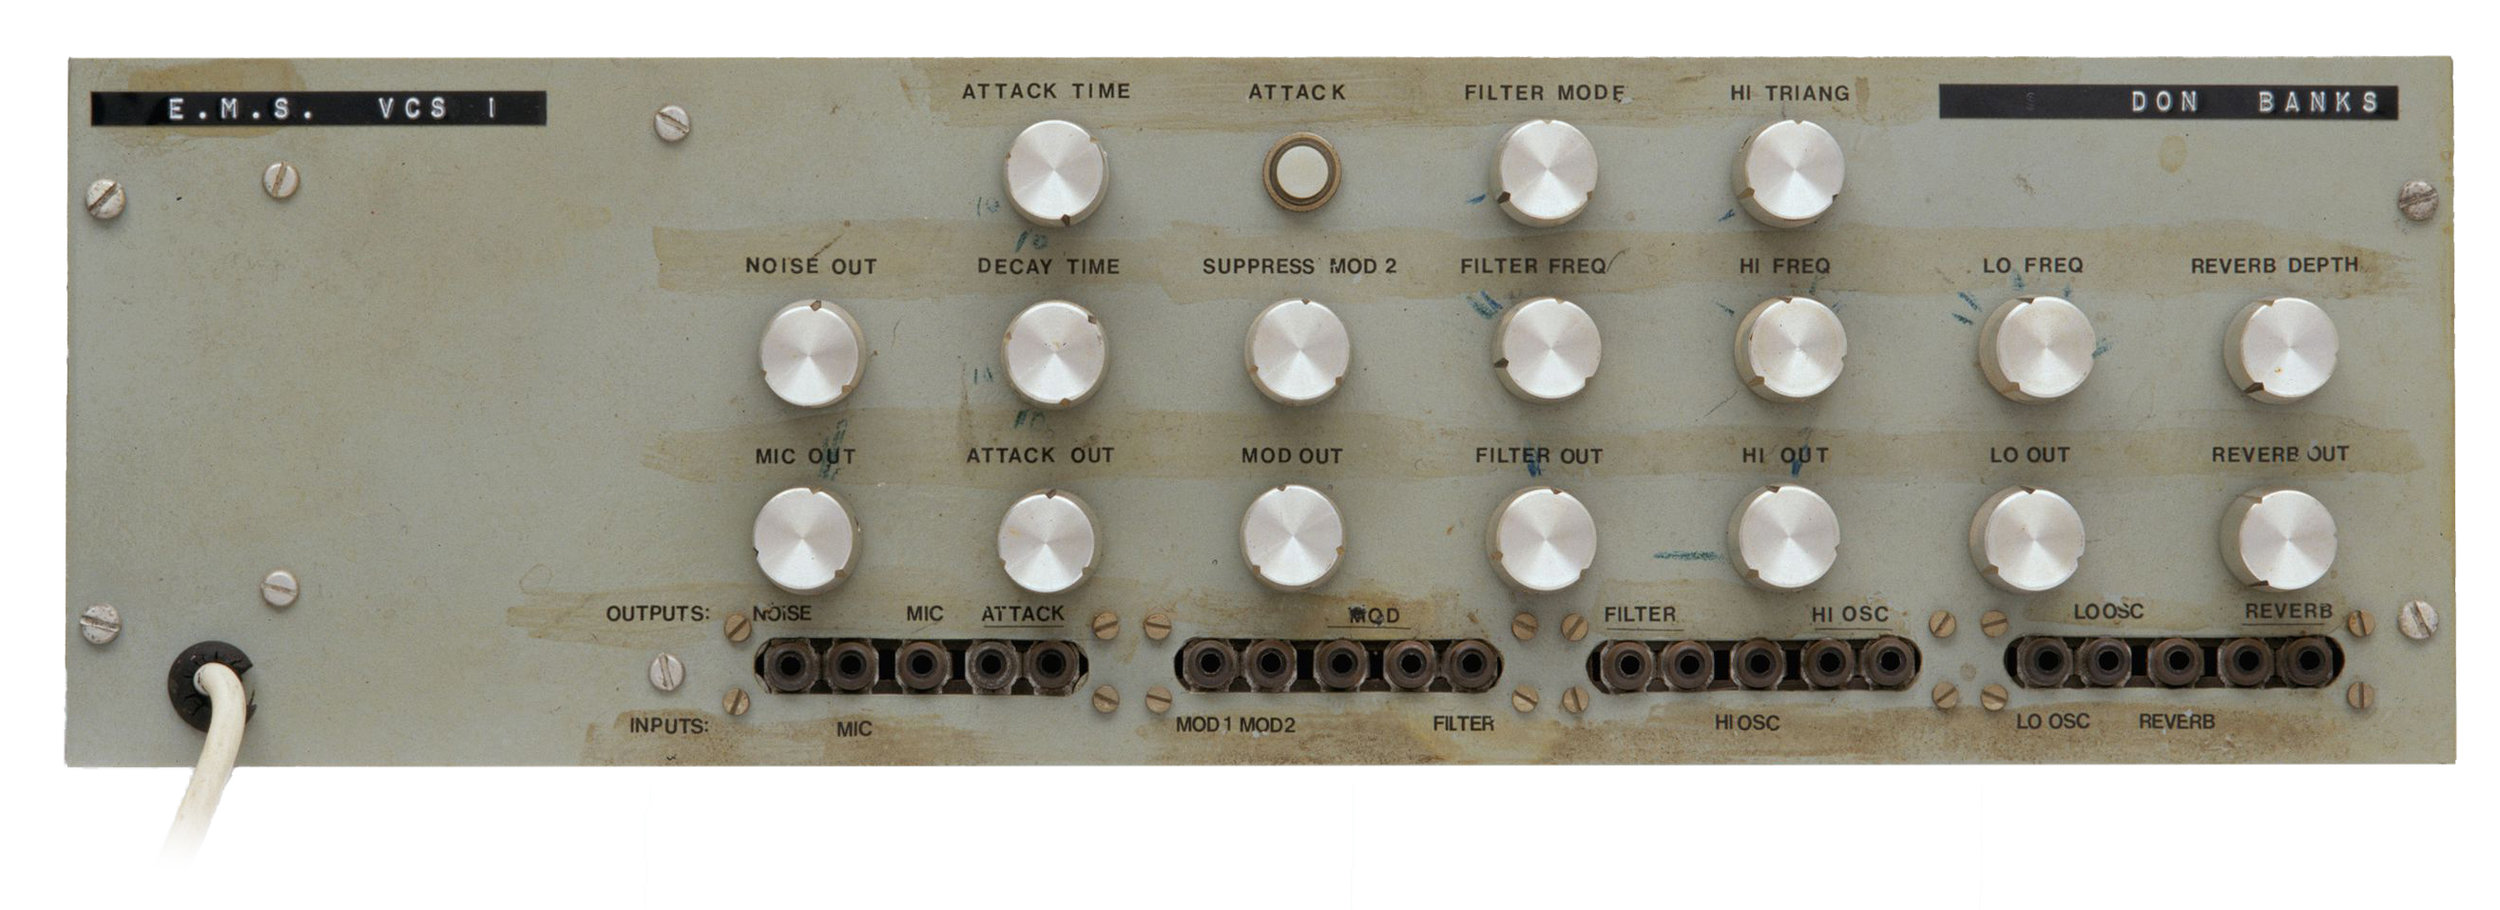 Electronic music synthesiser, model number VCS 1 owned and used by Don Banks.  H9953-13